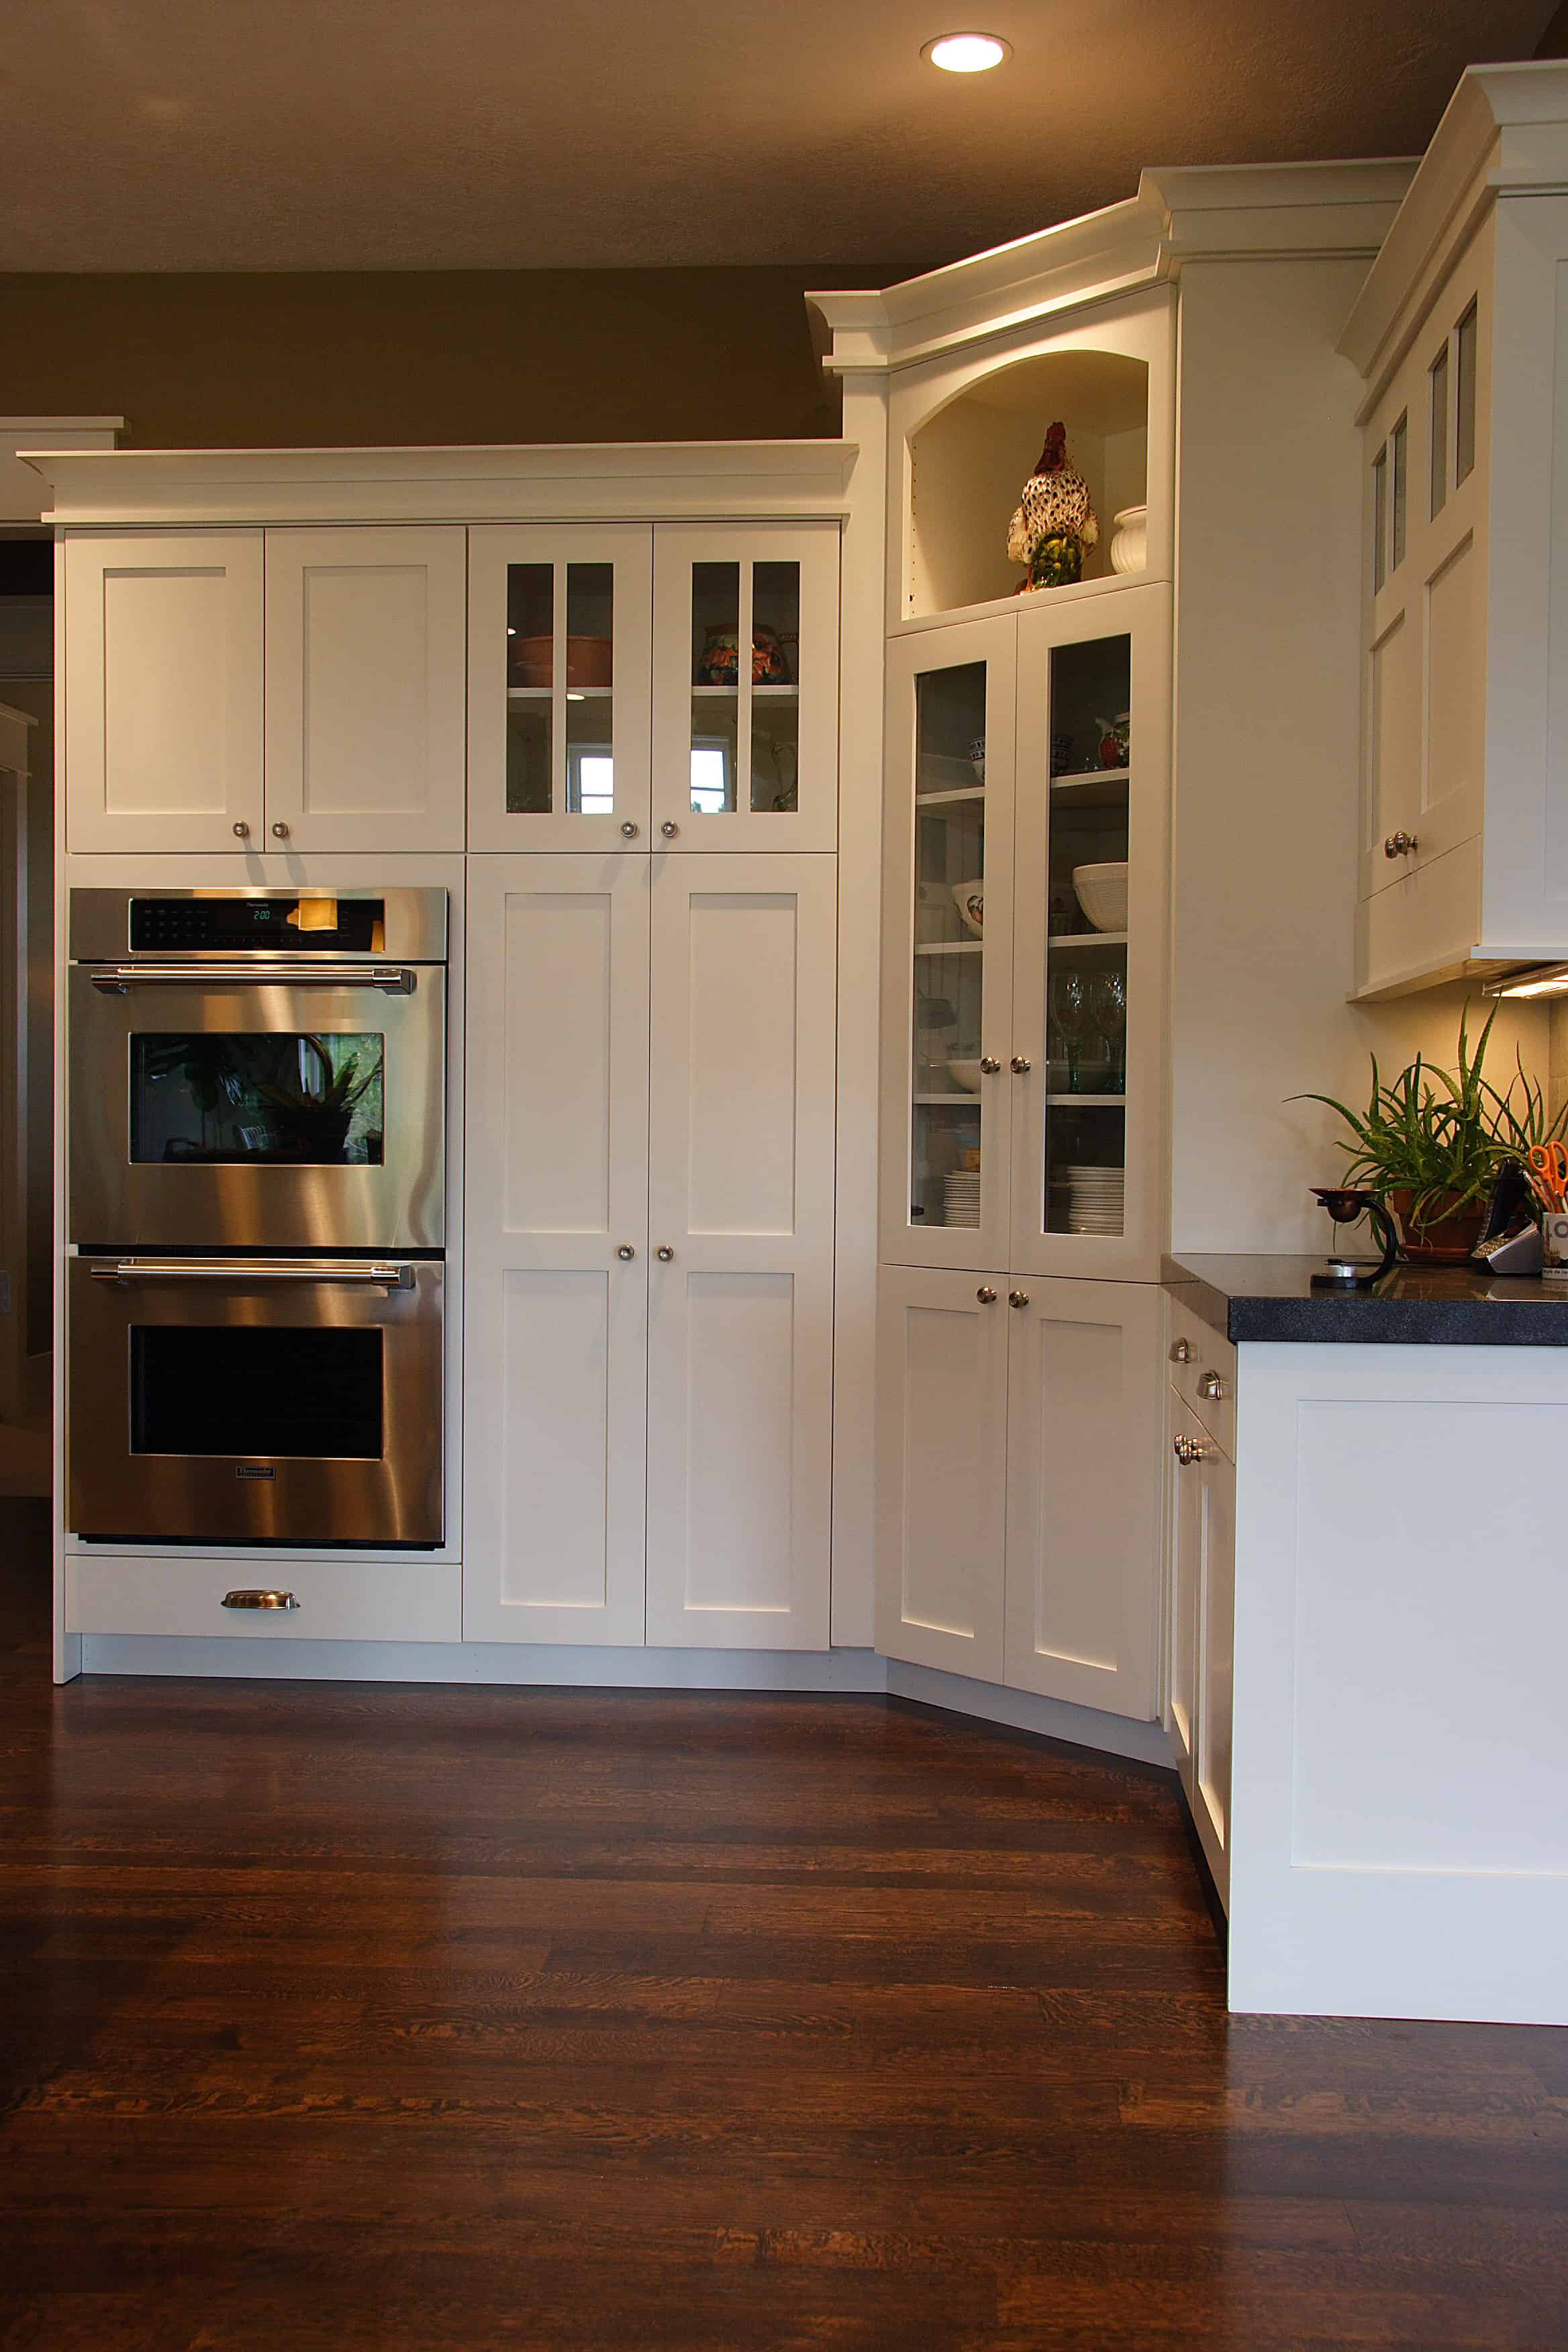 Field of Dreams Kitchen Cabinets Wide – Lane Myers ...